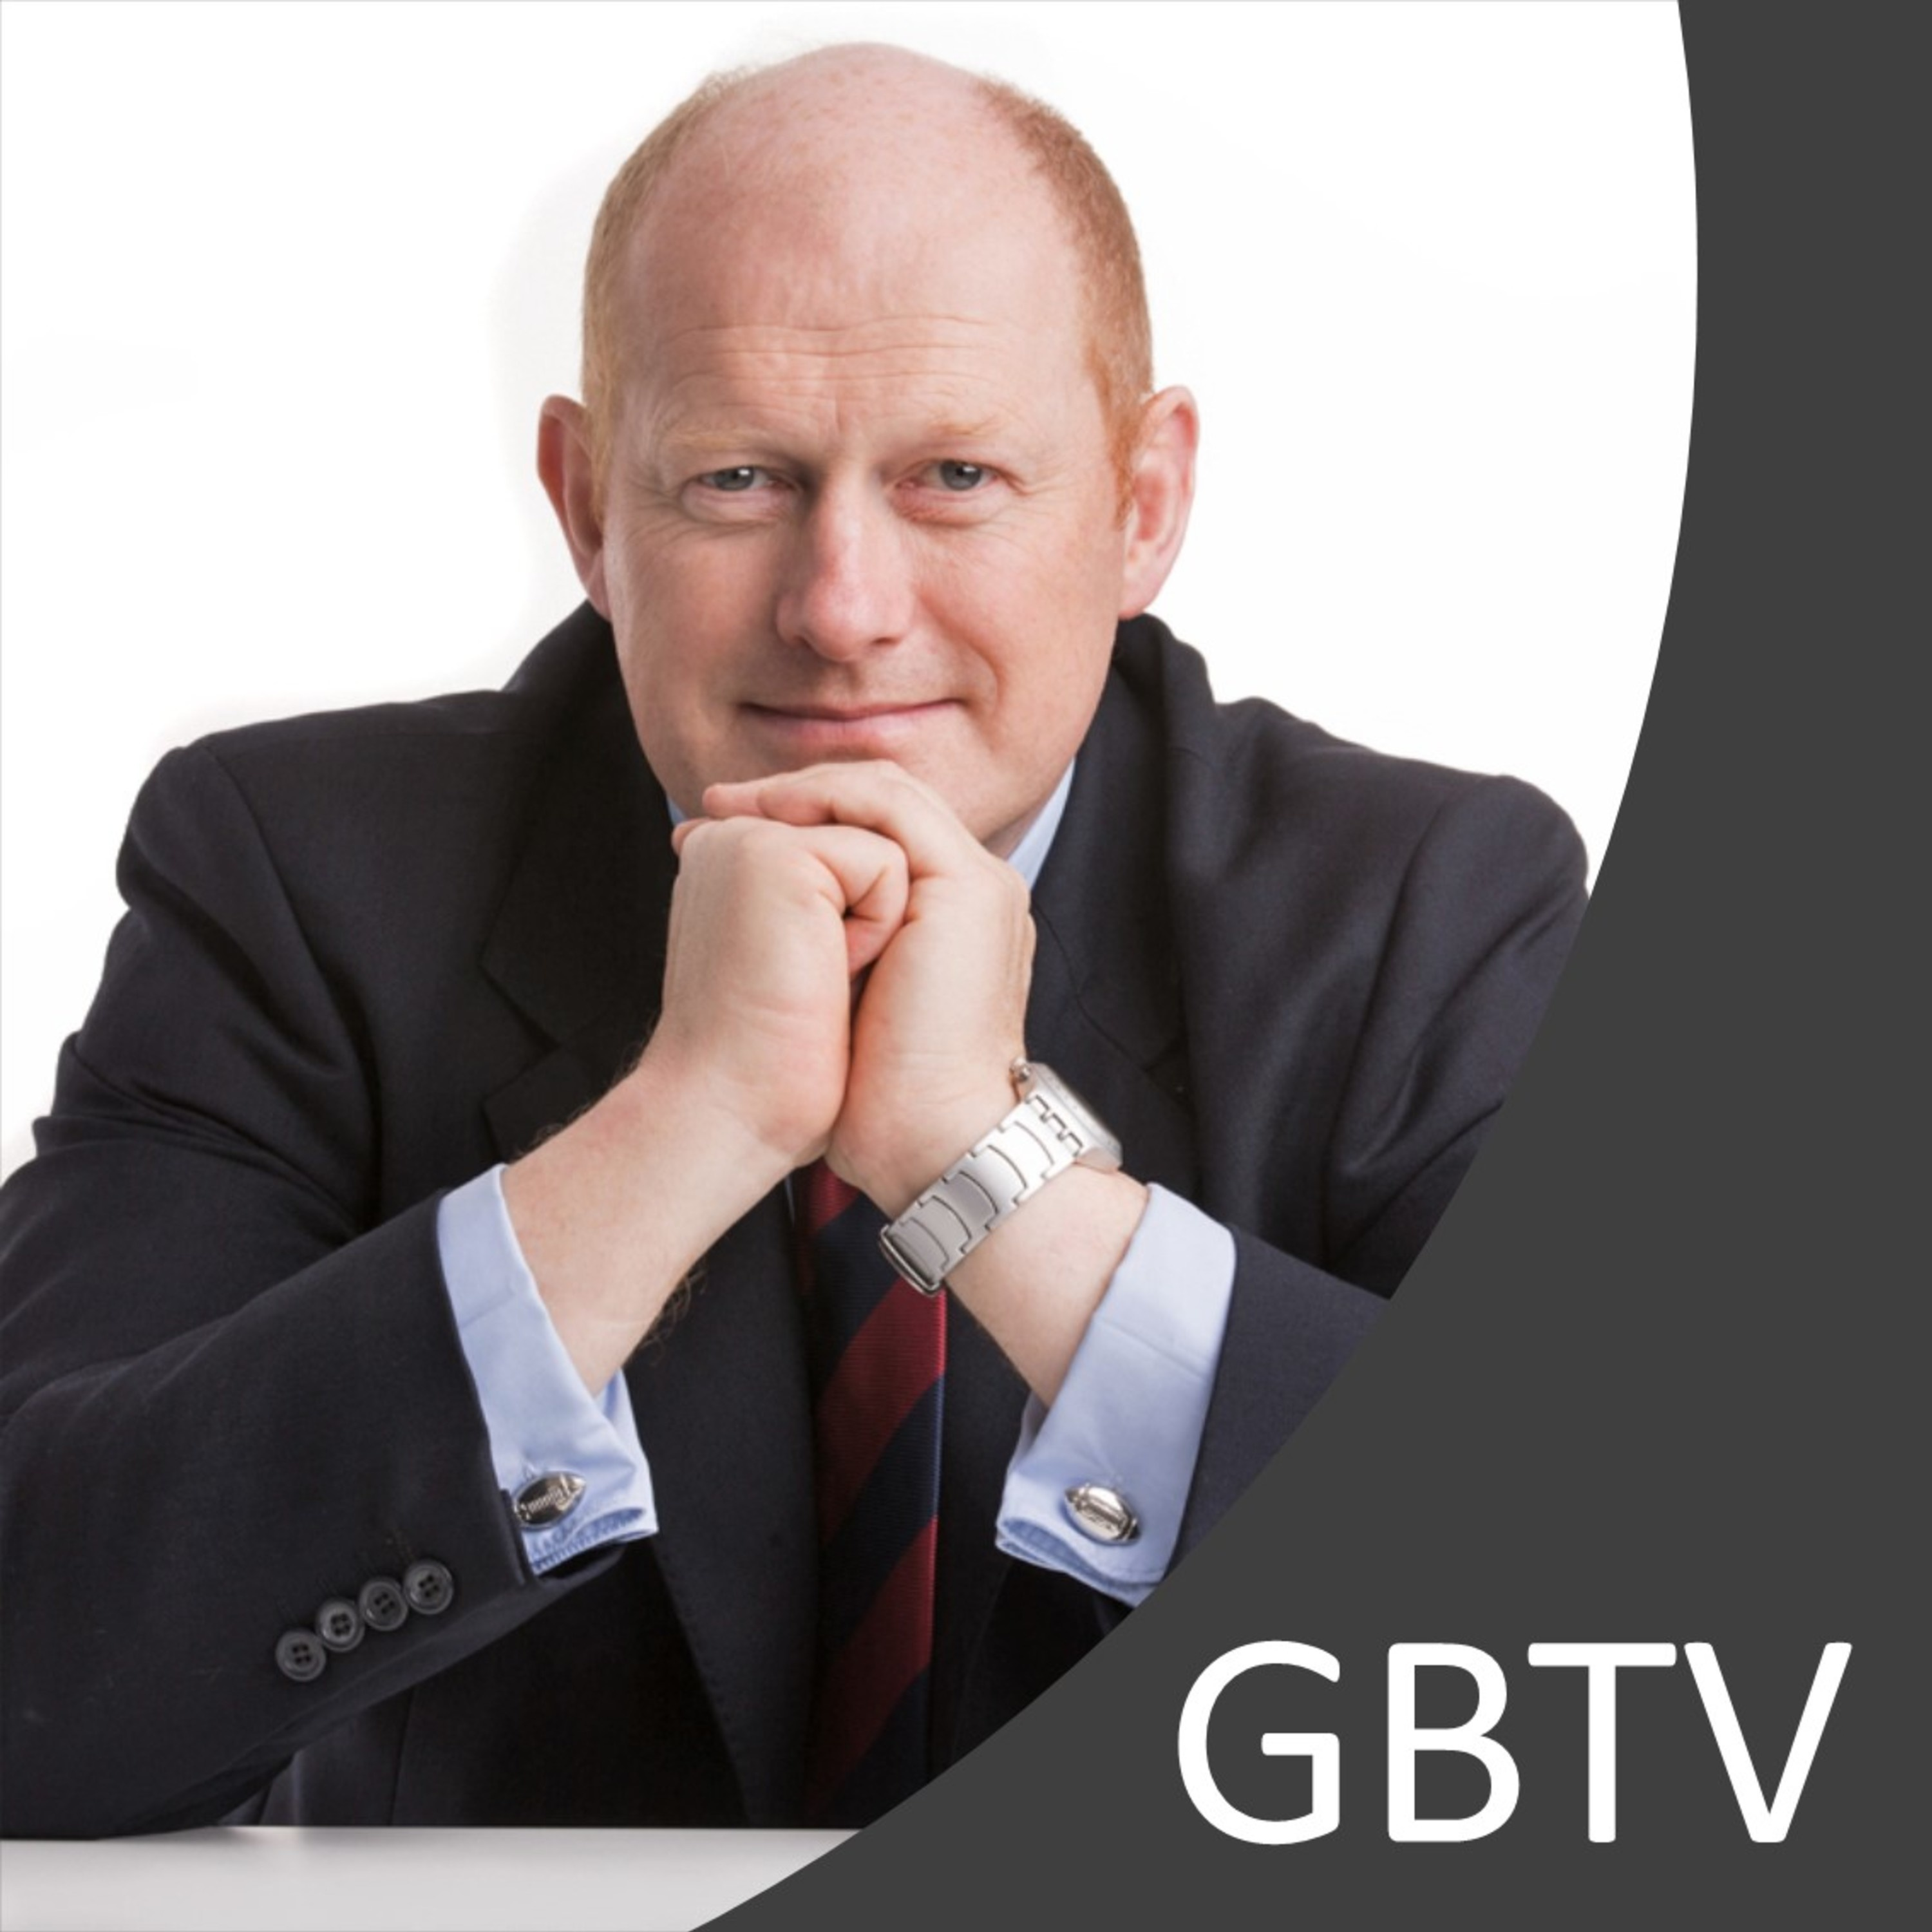 GBTV Podcast Episode 17 - How to develop your new business.